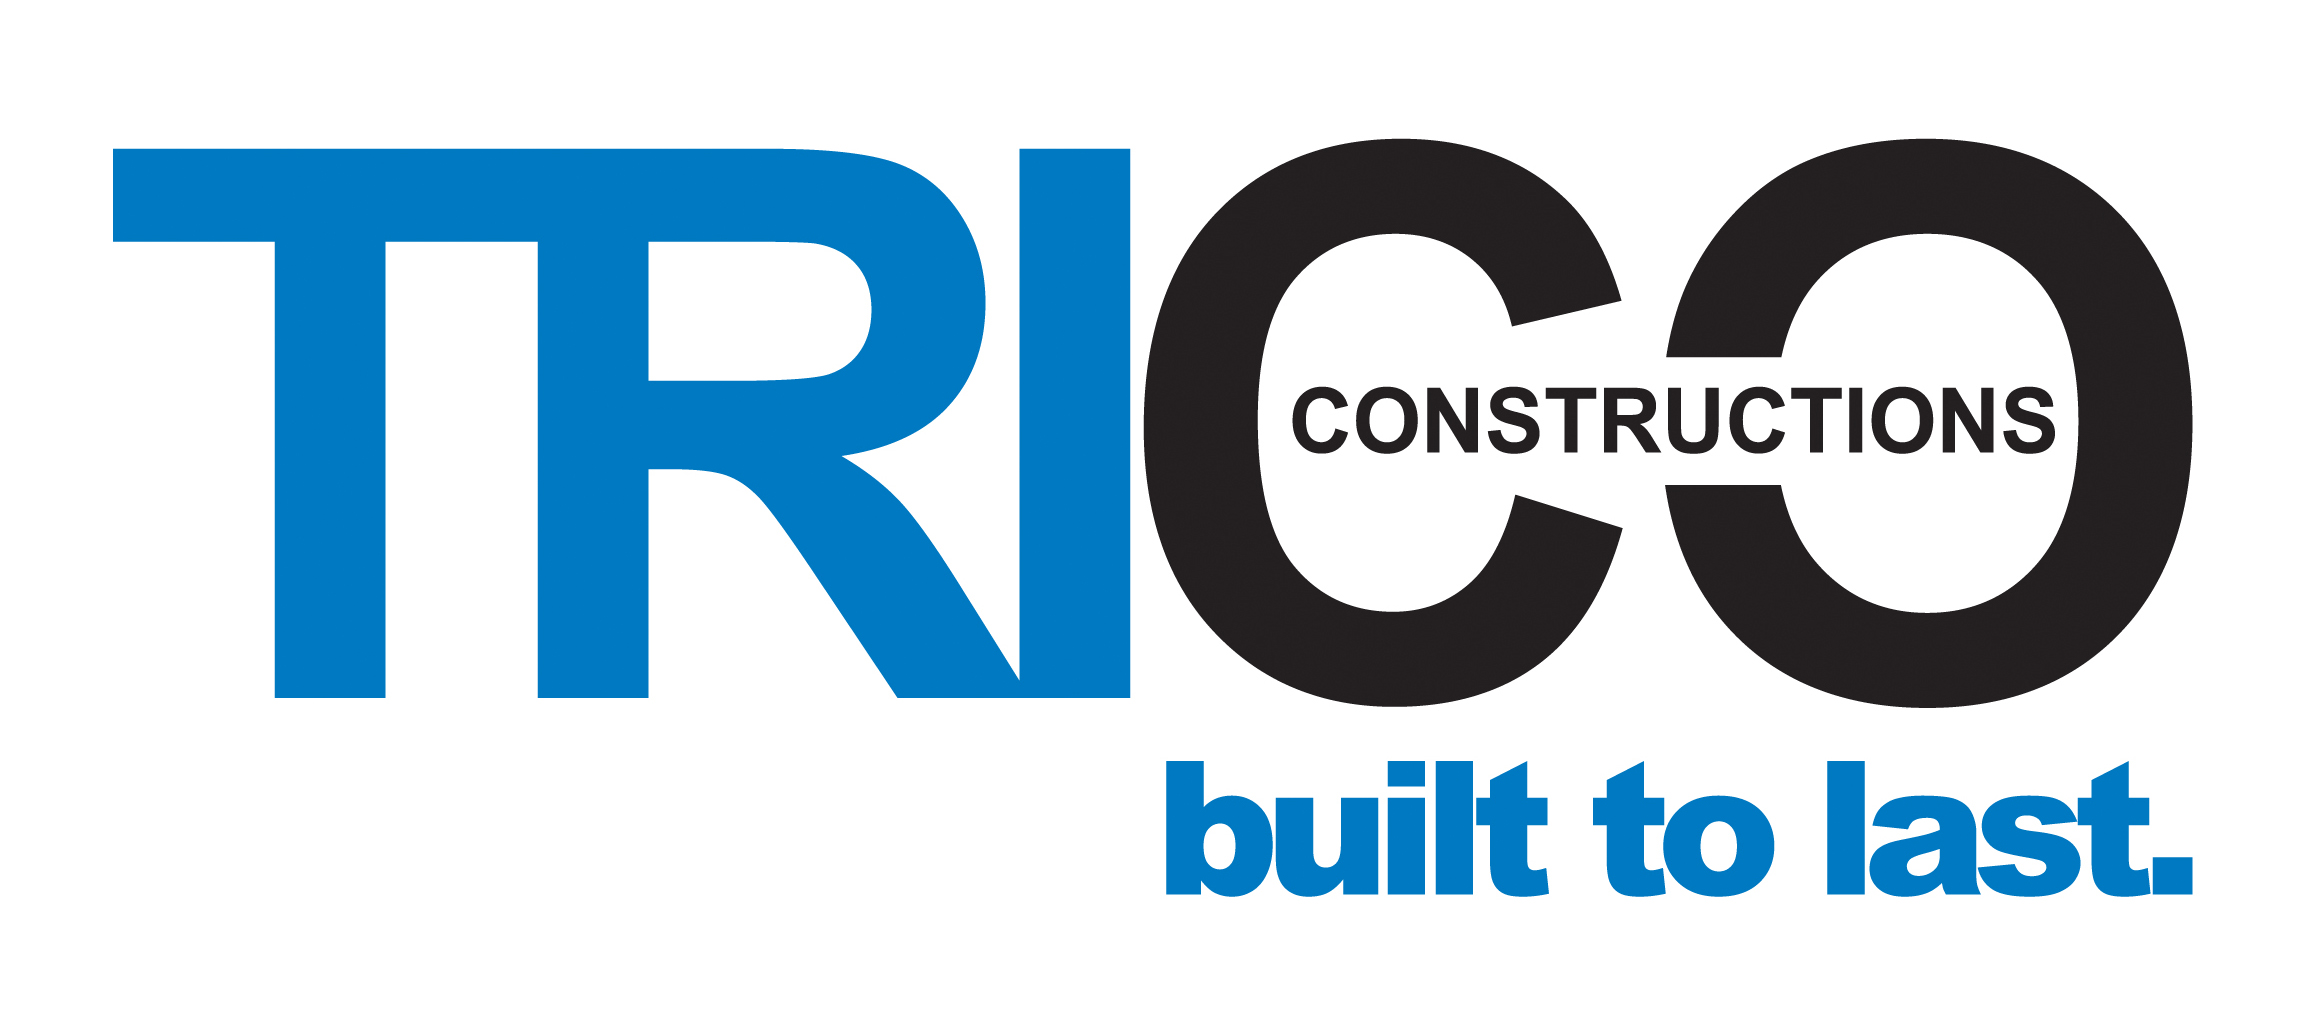 Trico built to last